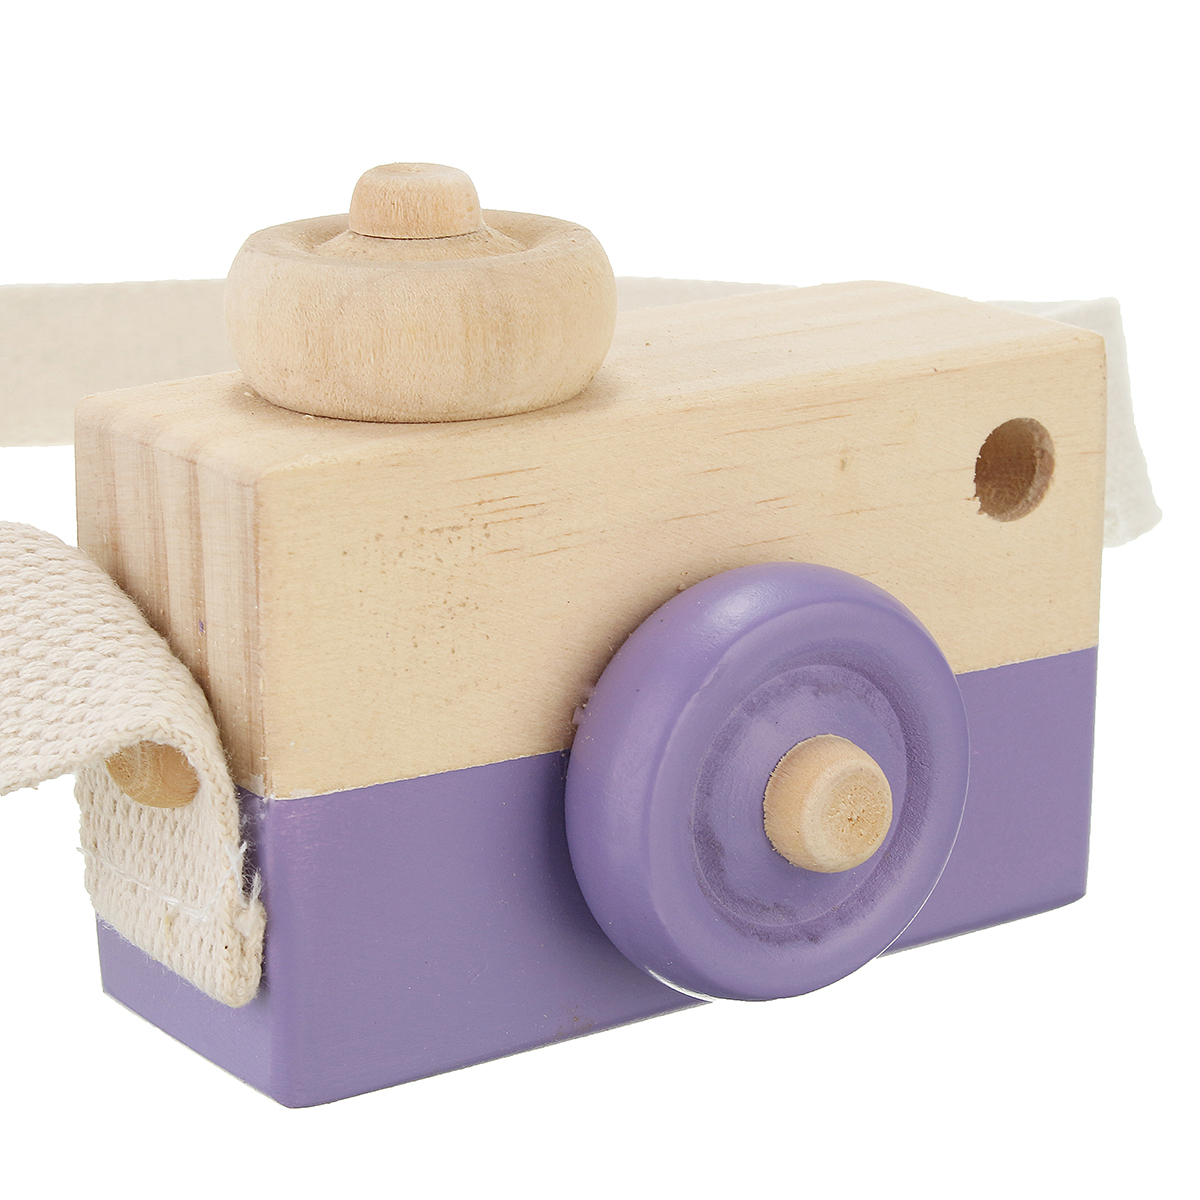 Kids Photography Cute Mini Wood Camera Pillow Children Decor Natural Wooden Camera Shooting Prop